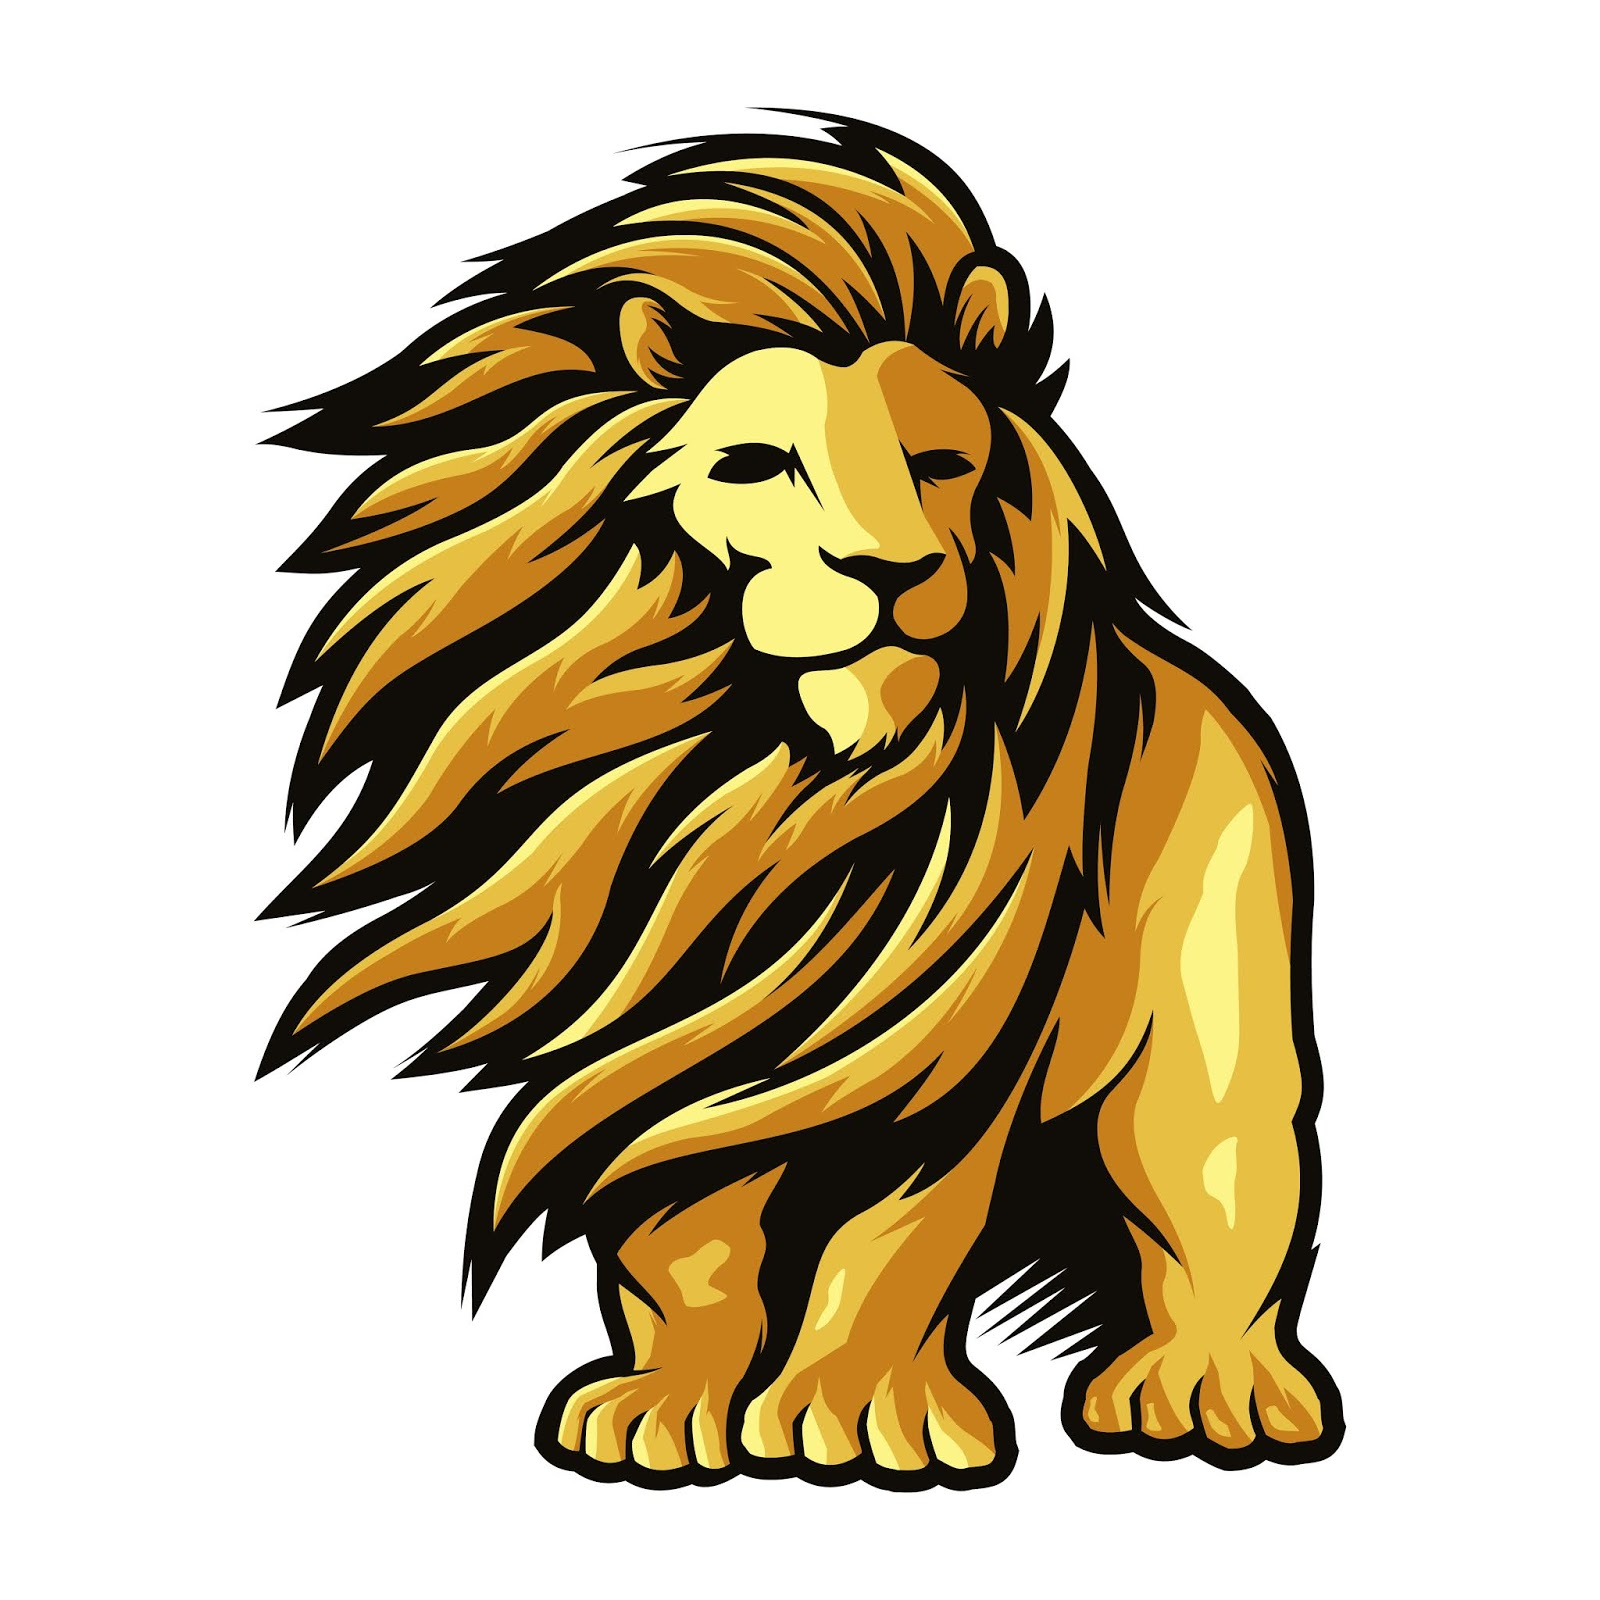 Lion Long Hair Illustration Free Download Vector CDR, AI, EPS and PNG Formats